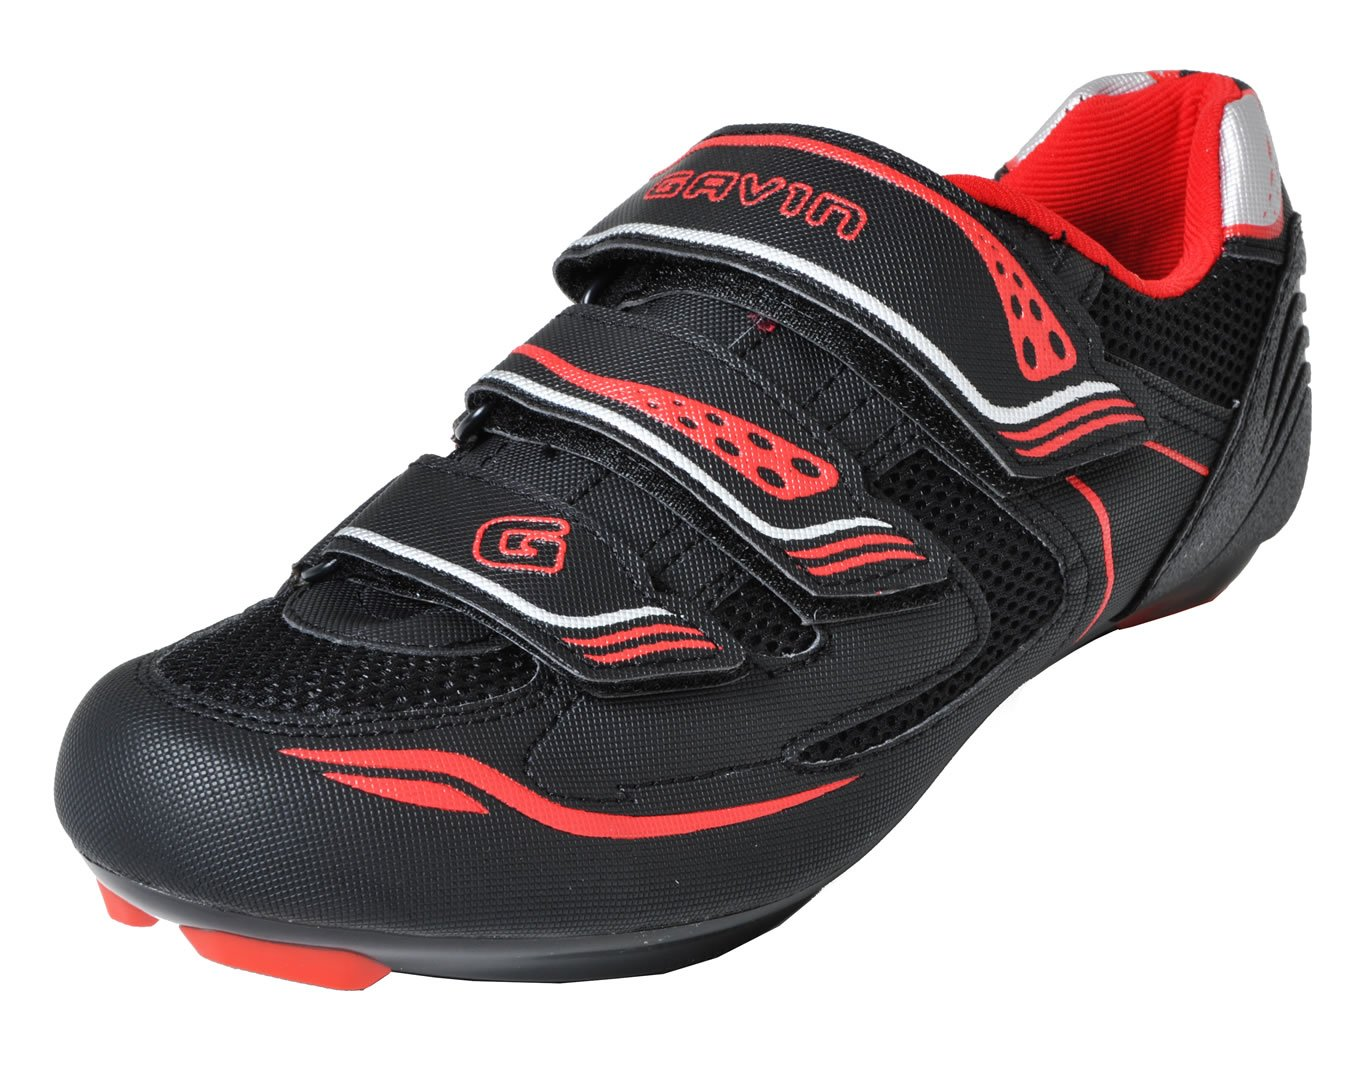 Gavin Men's VELO Road Bike Cycling Shoe, Black/Red, 44 EU